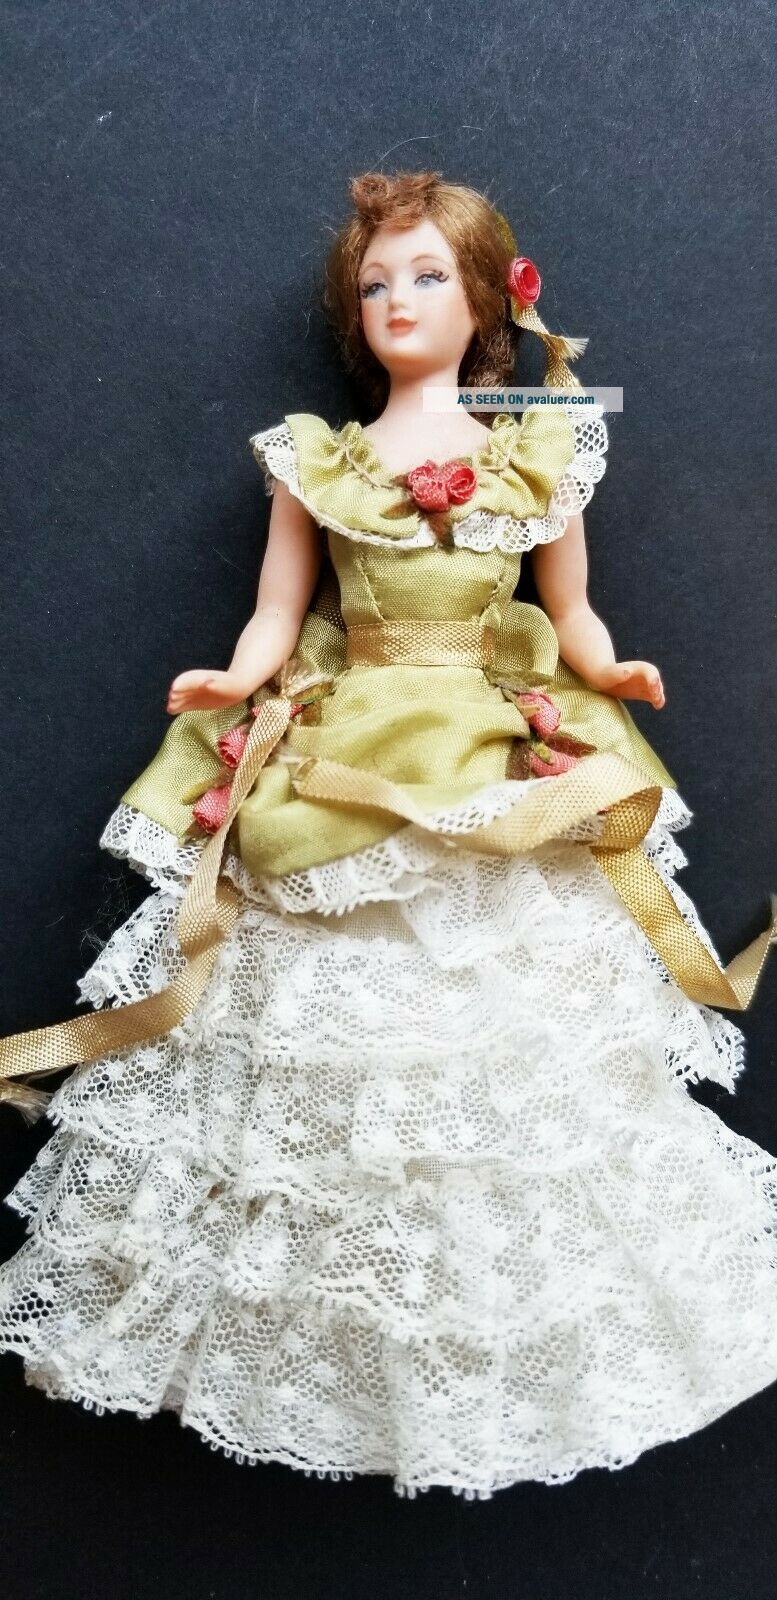 VINTAGE ARTISAN PORCELAIN LADY DOLL IN GREEN DRESS WITH LACE